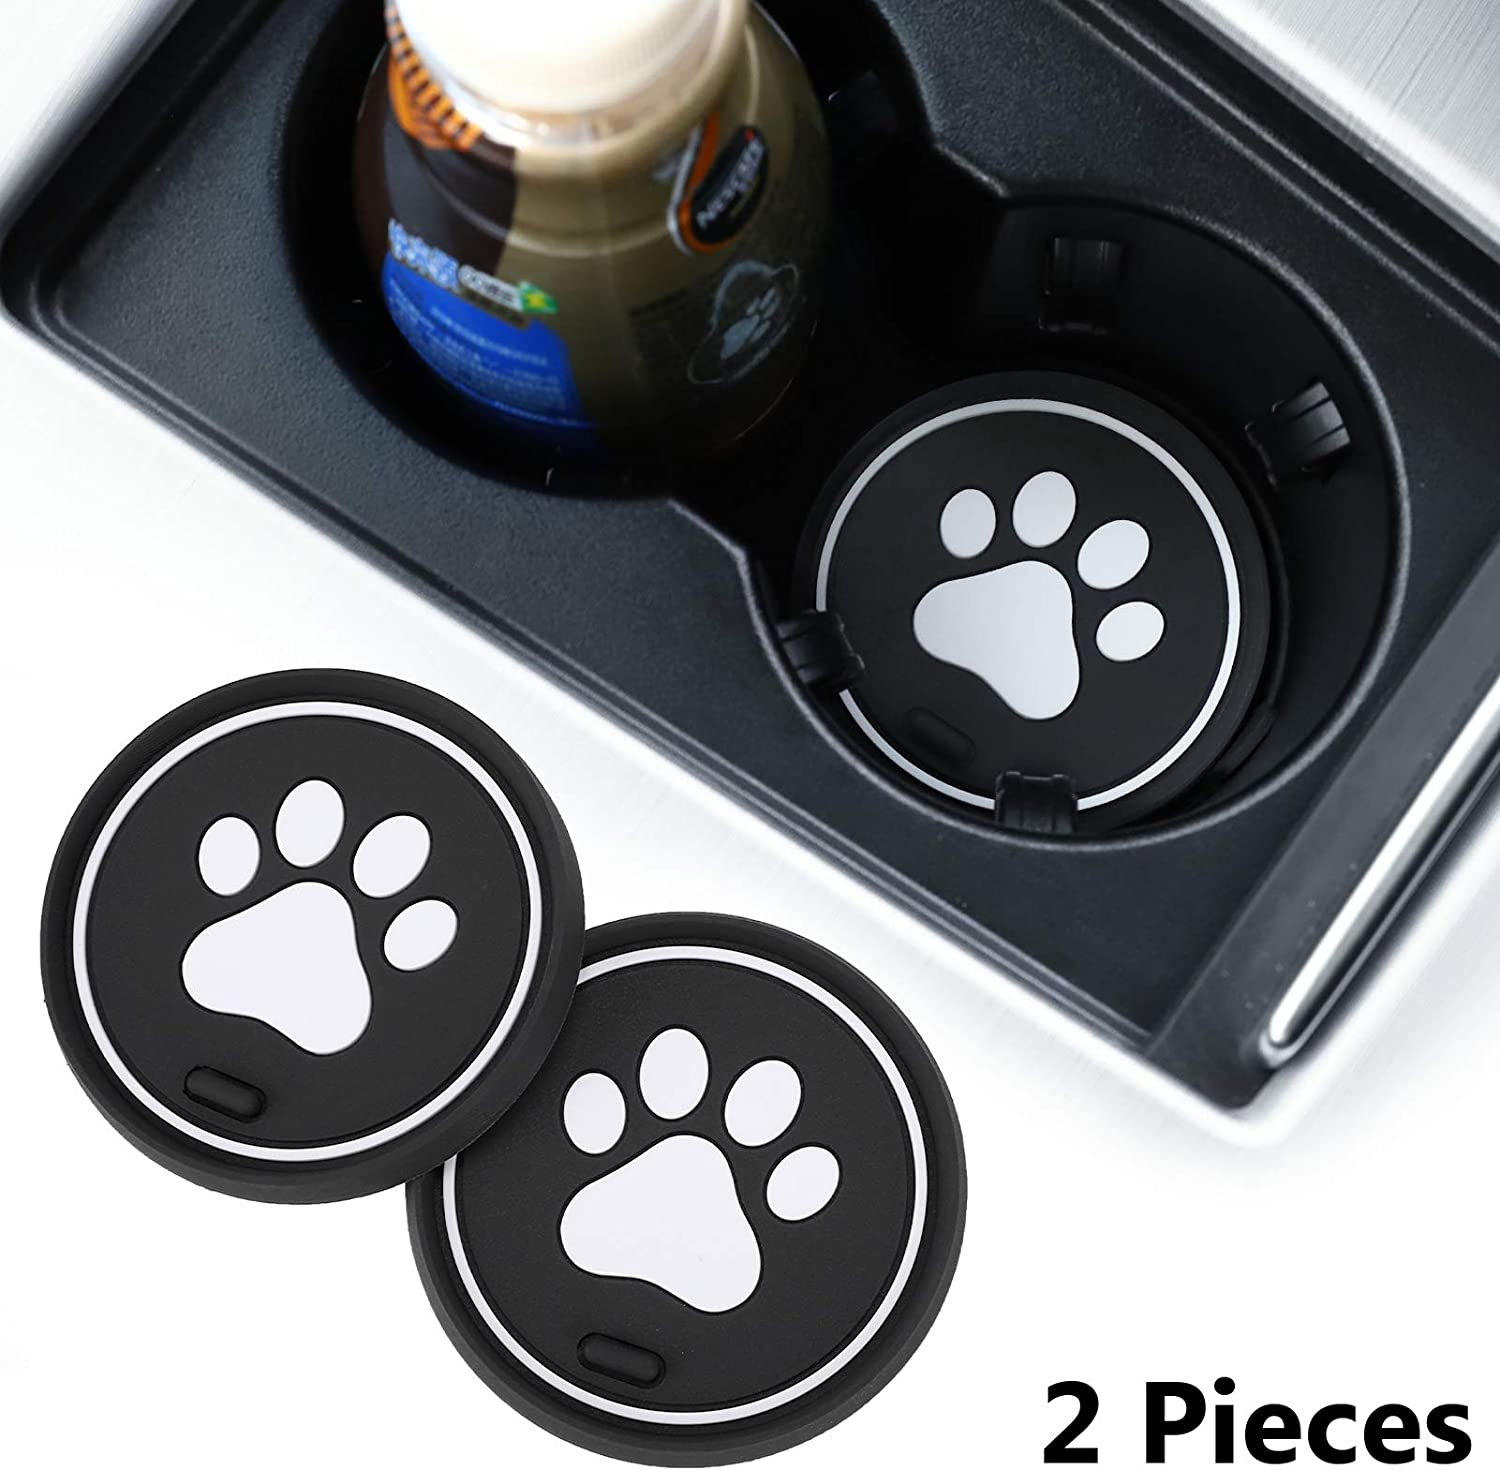 2.75 Inch Soft Rubber Pad Set Round Auto Cup Holder Insert Drink Coaster Car Interior Accessories DIYcarhome 2 Pack Car Cup Holder Coasters for Dallas Cowboys